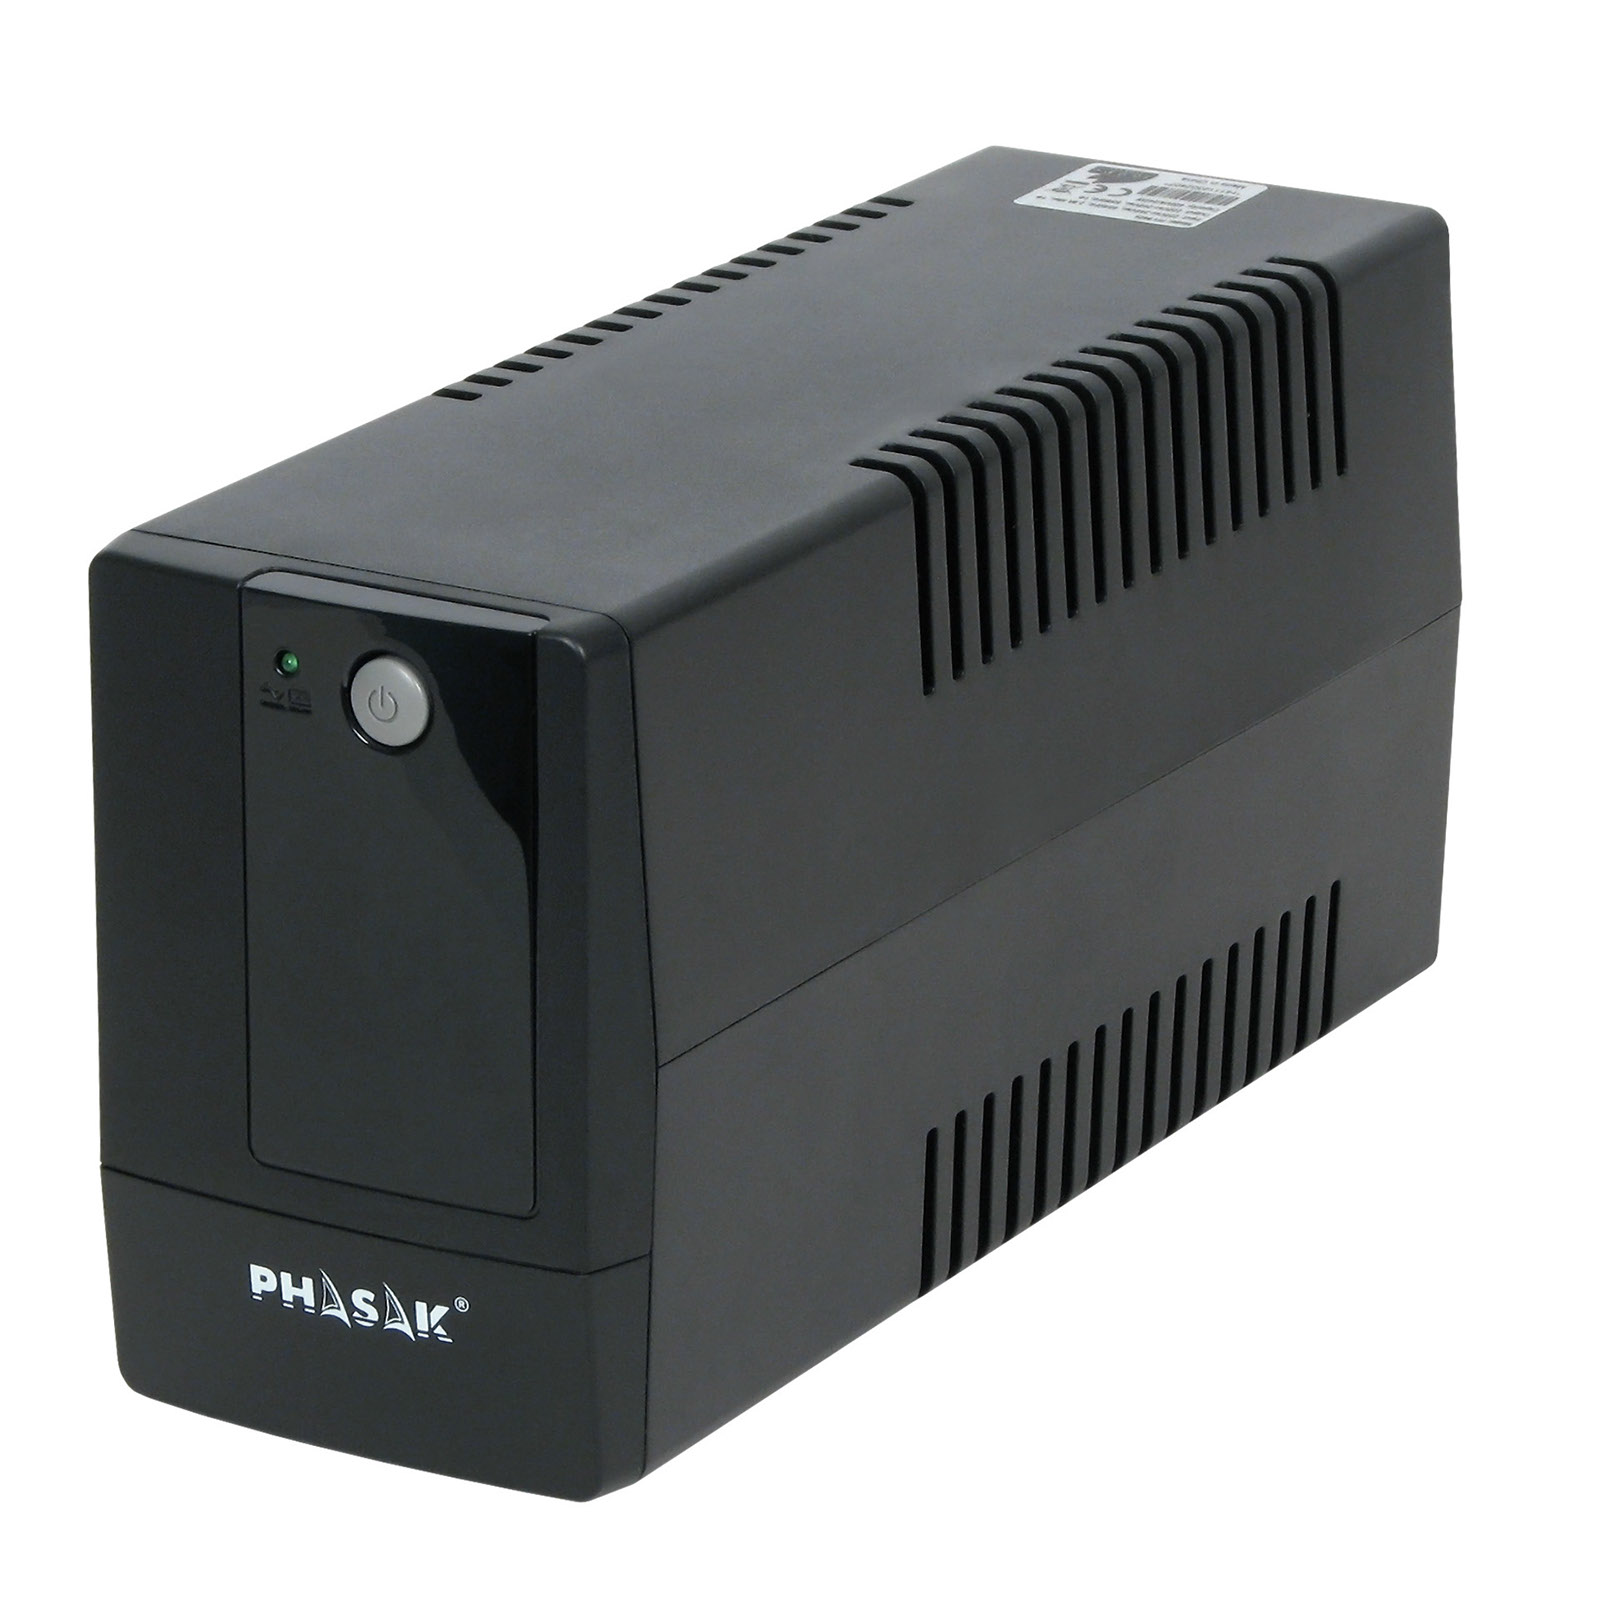 Main image Uninterruptible Power Supply UPS Phasak AK-UP1-400 400VA 240W